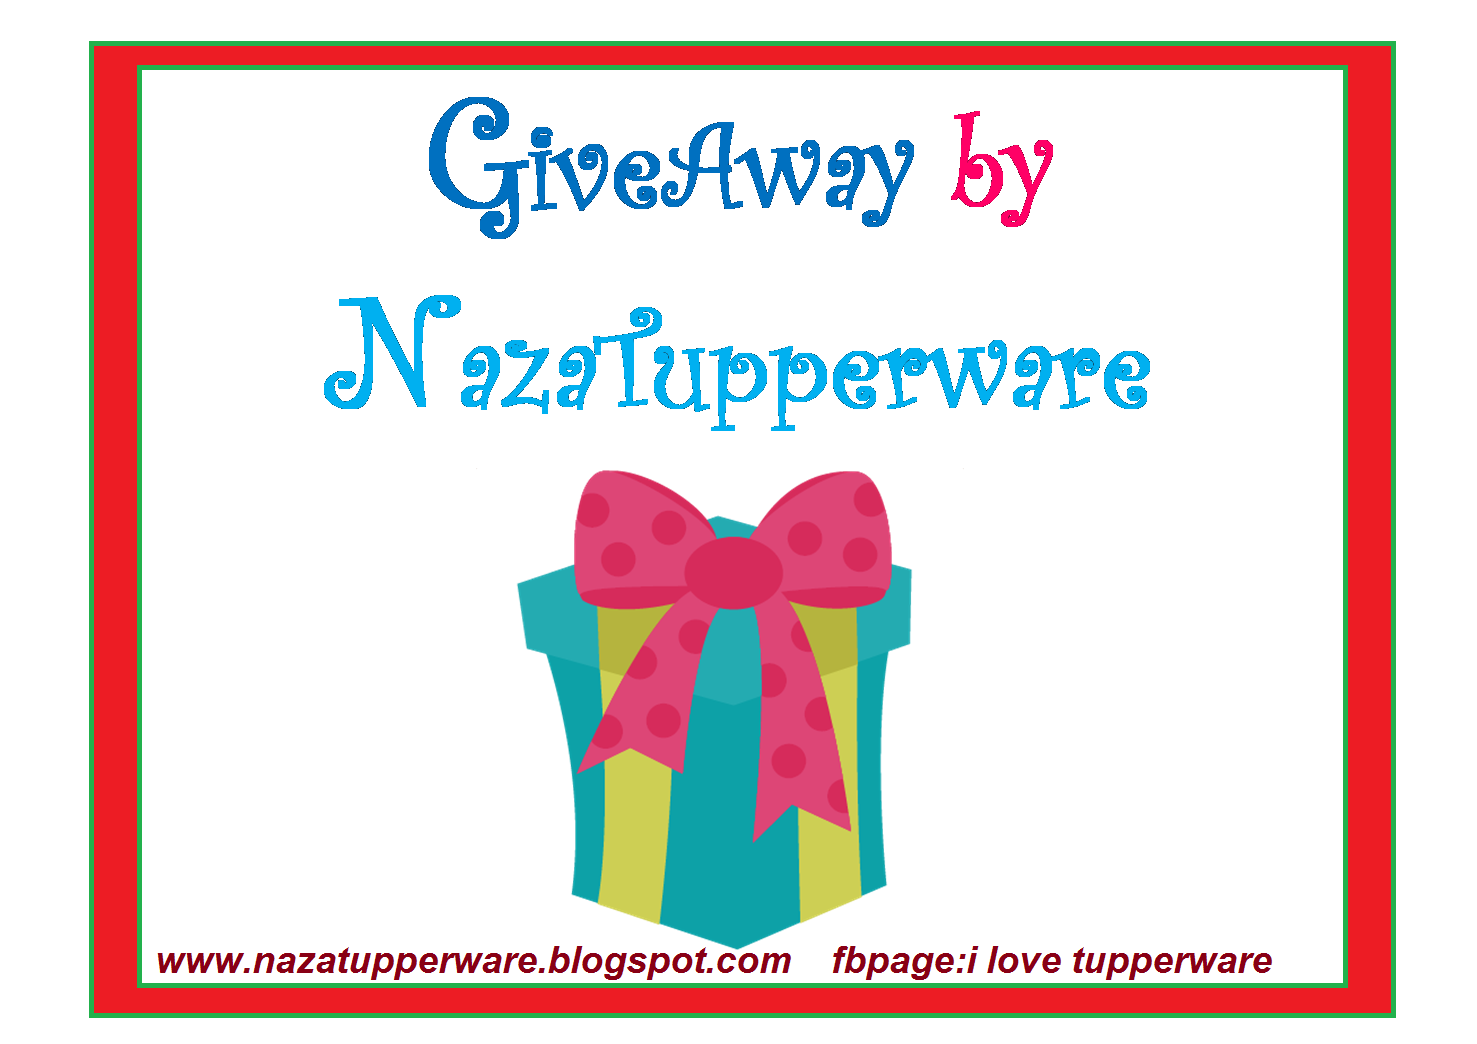 http://nazatupperware.blogspot.com/2014/09/giveaway-by-nazatupperware-jom-join.html